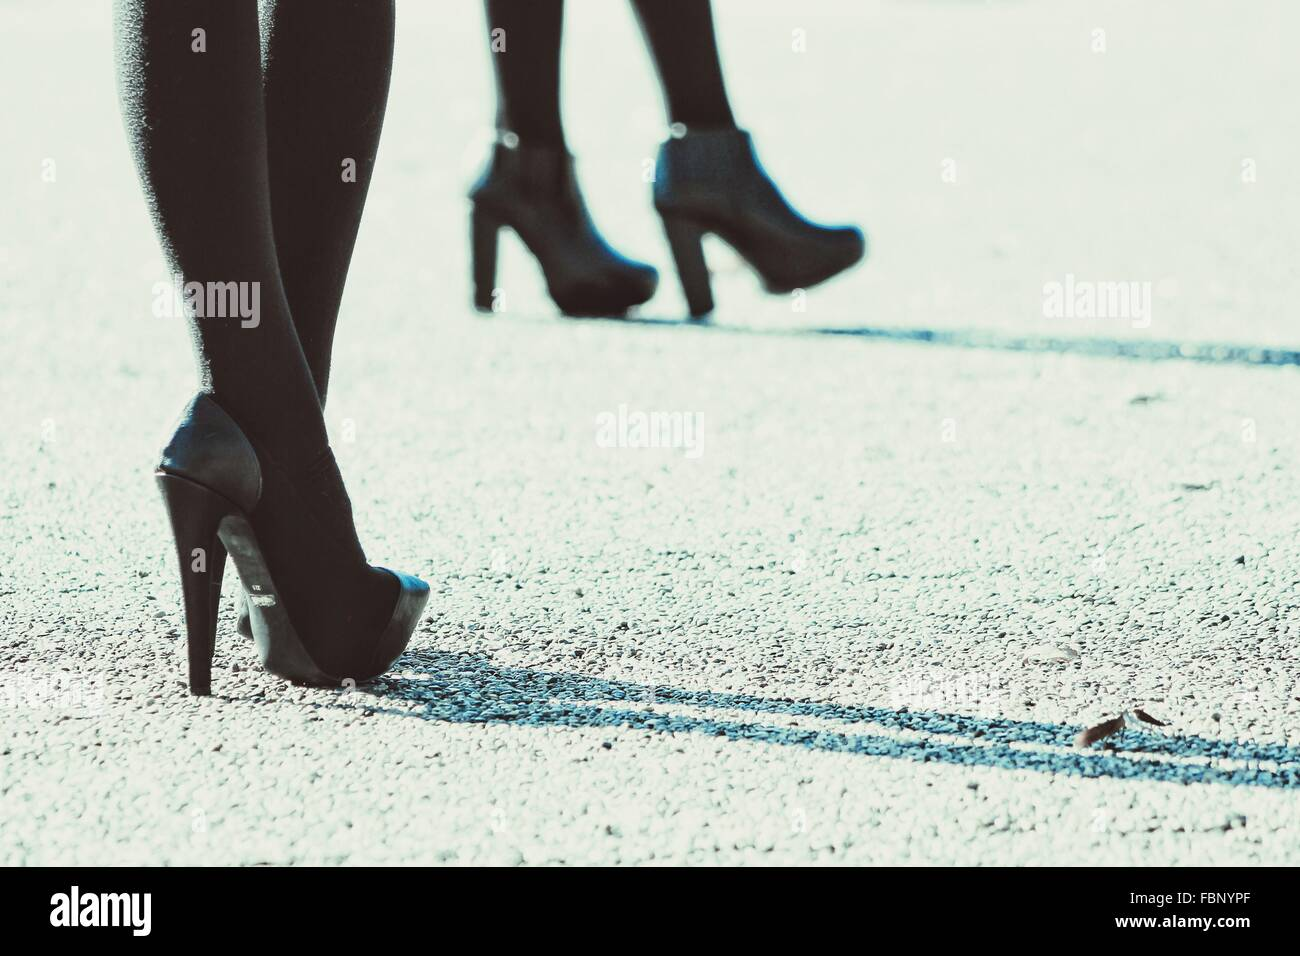 Low Section Of Women With High Heels On Street - Stock Image